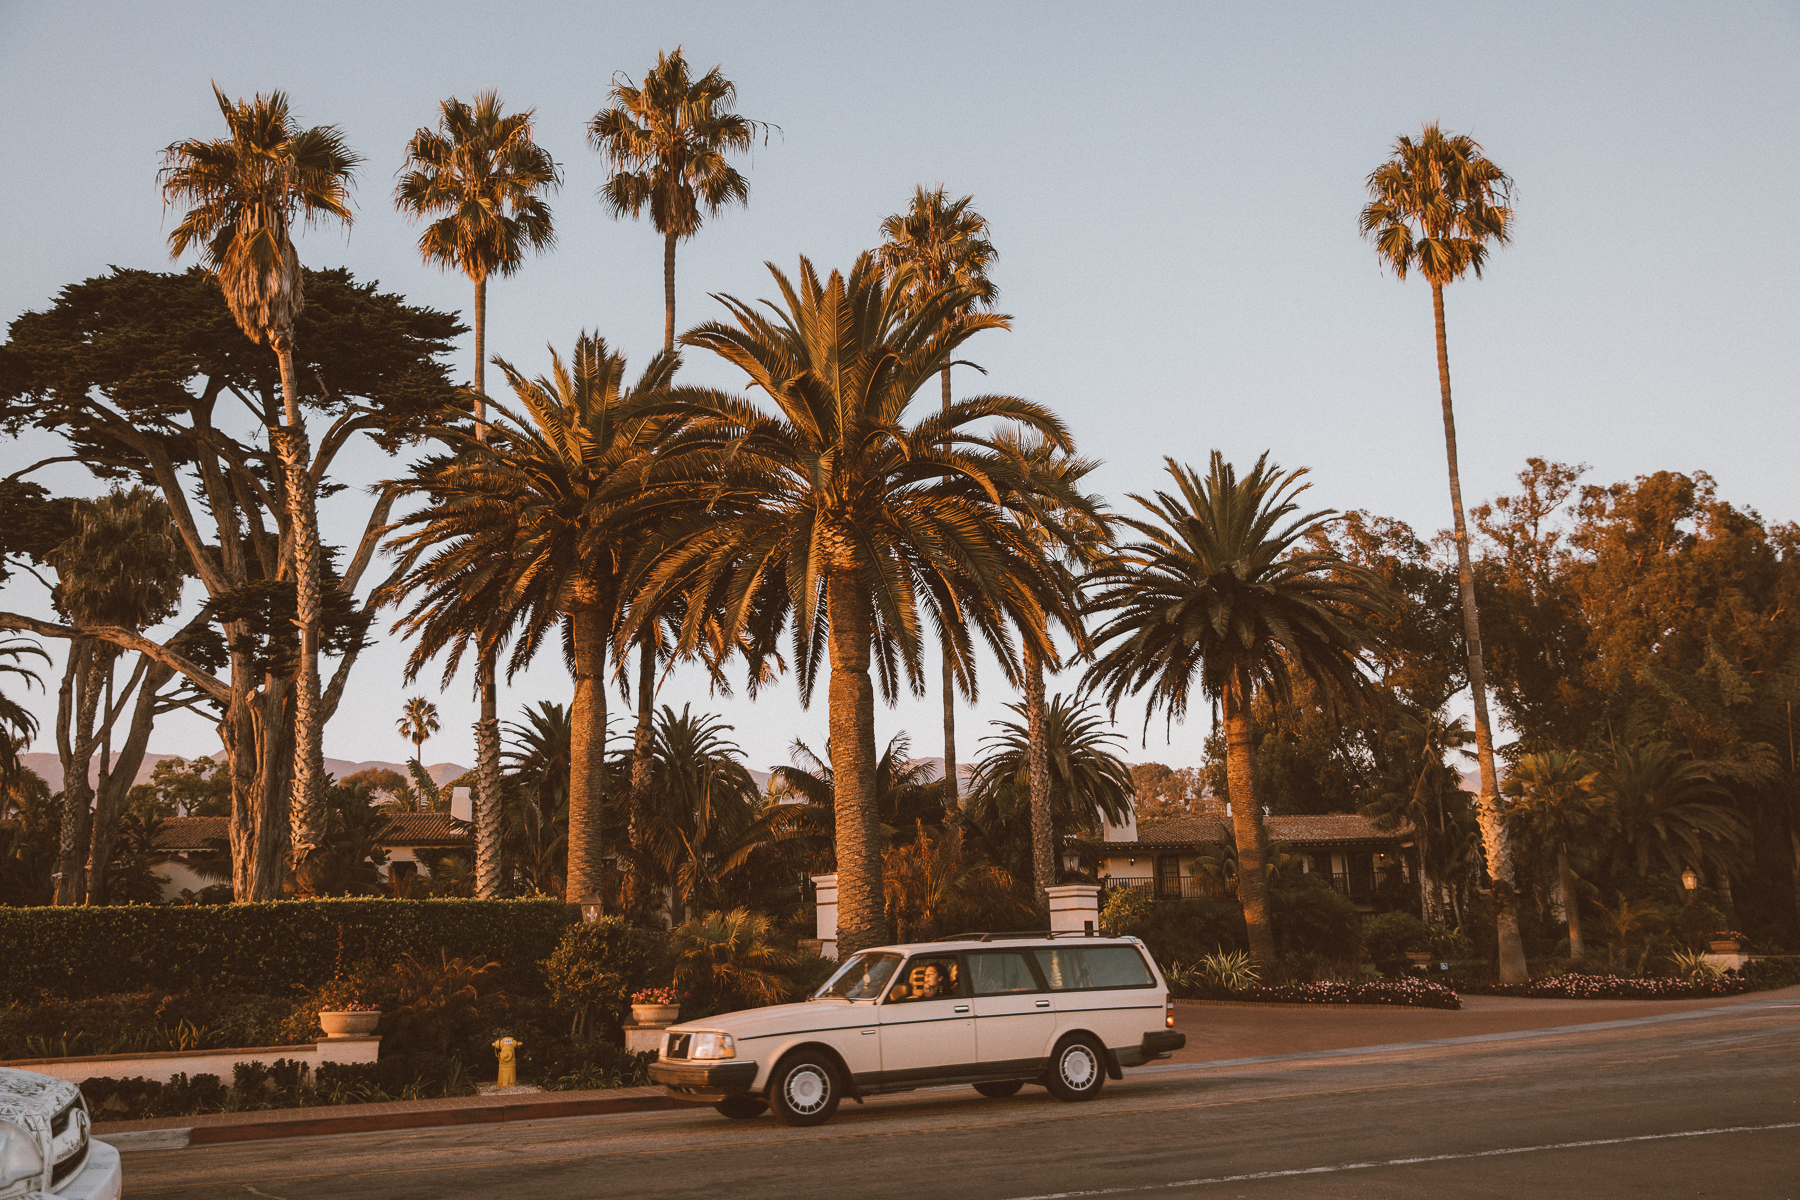 California Road trip by photographer Ailera Stone